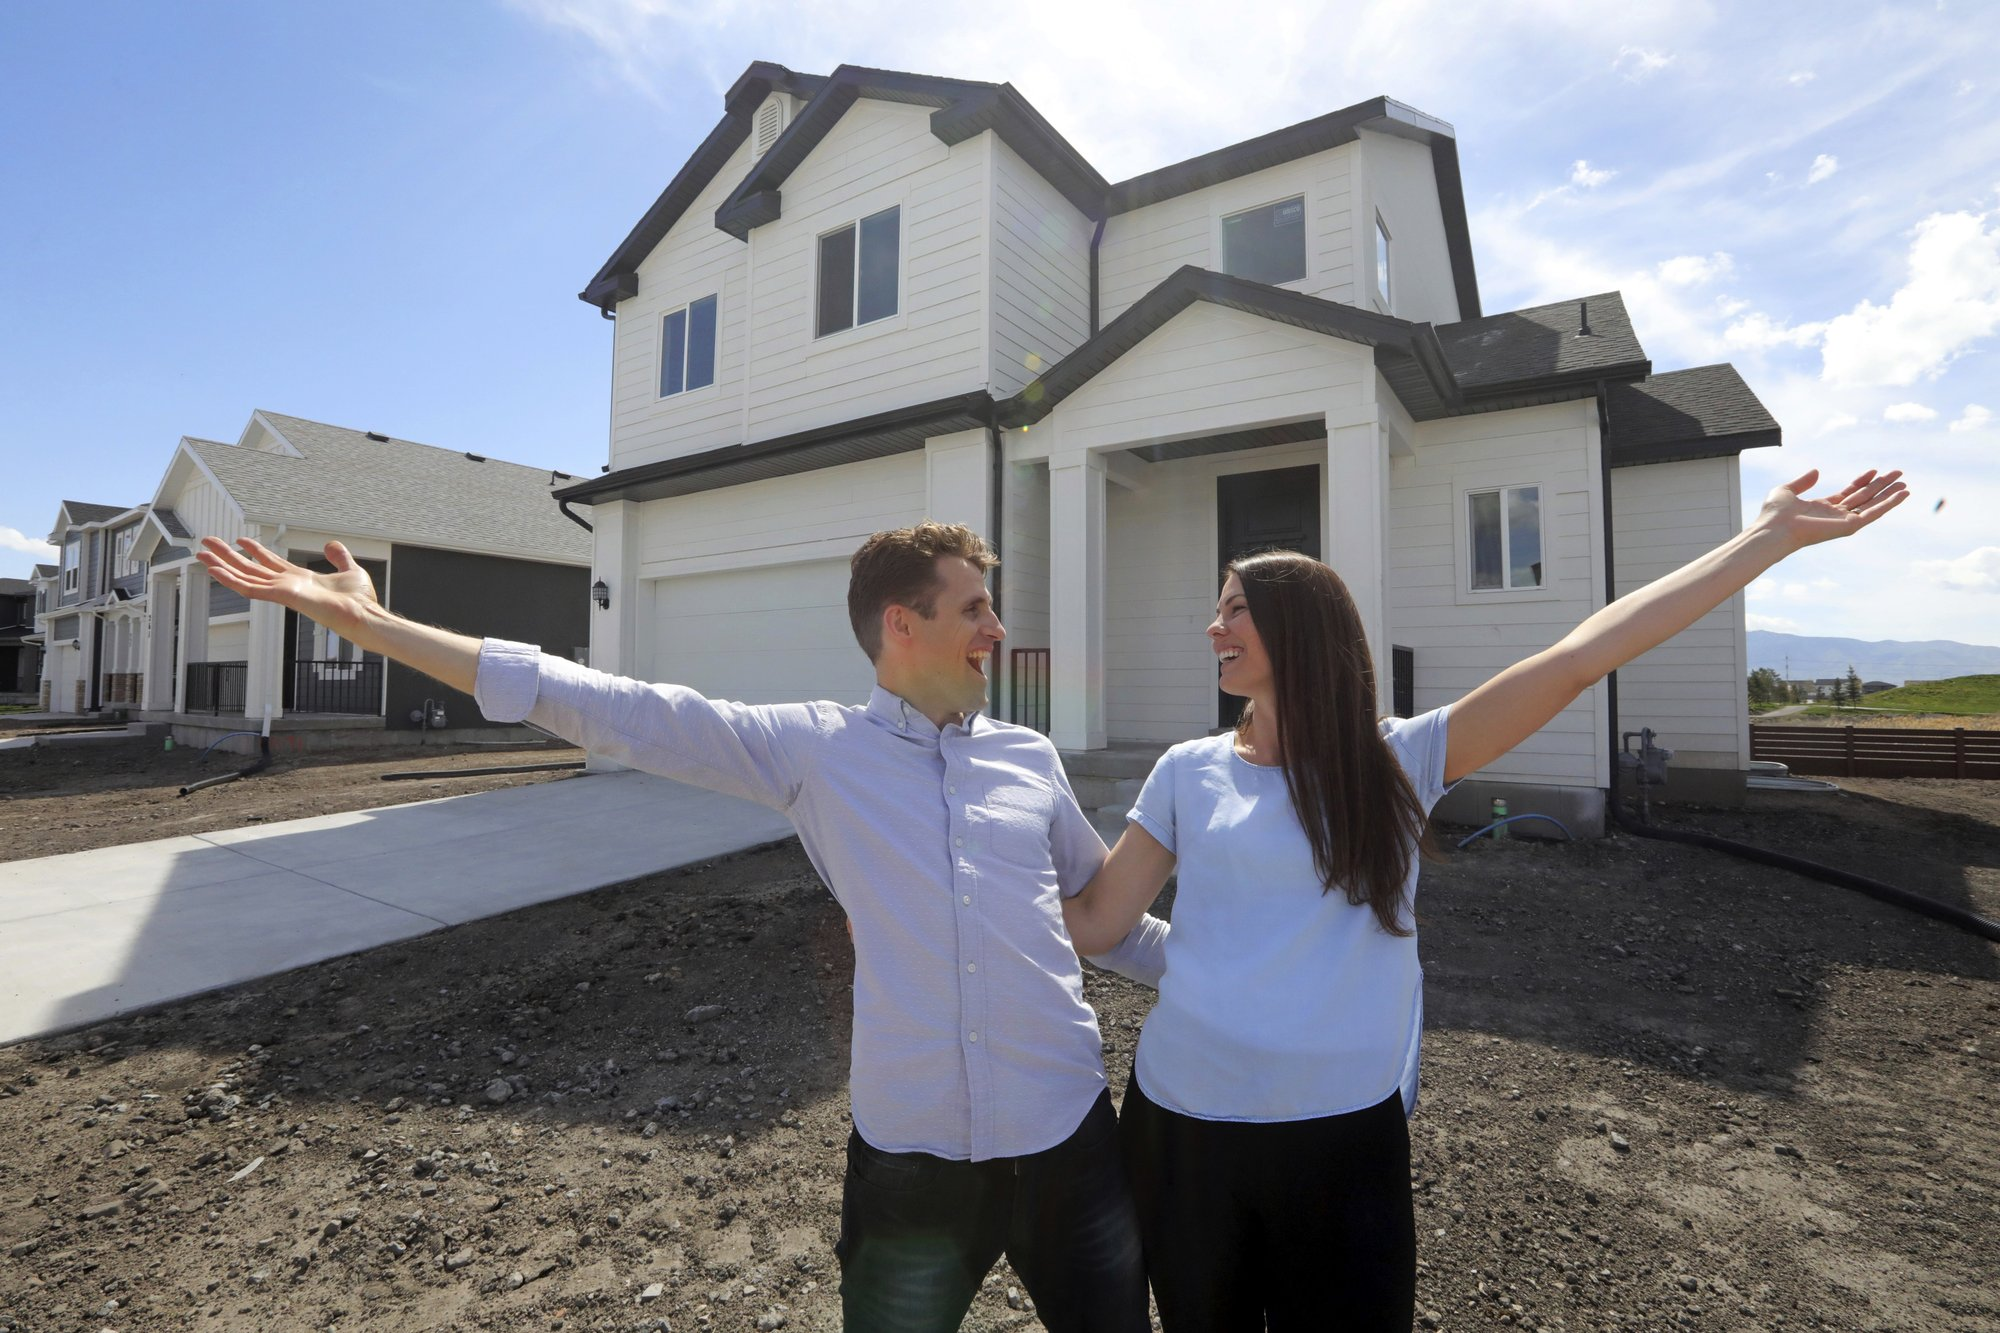 Young homebuyers scramble as prices rise faster than incomes By JOSH BOAK and LARRY FENN May 25, 2019